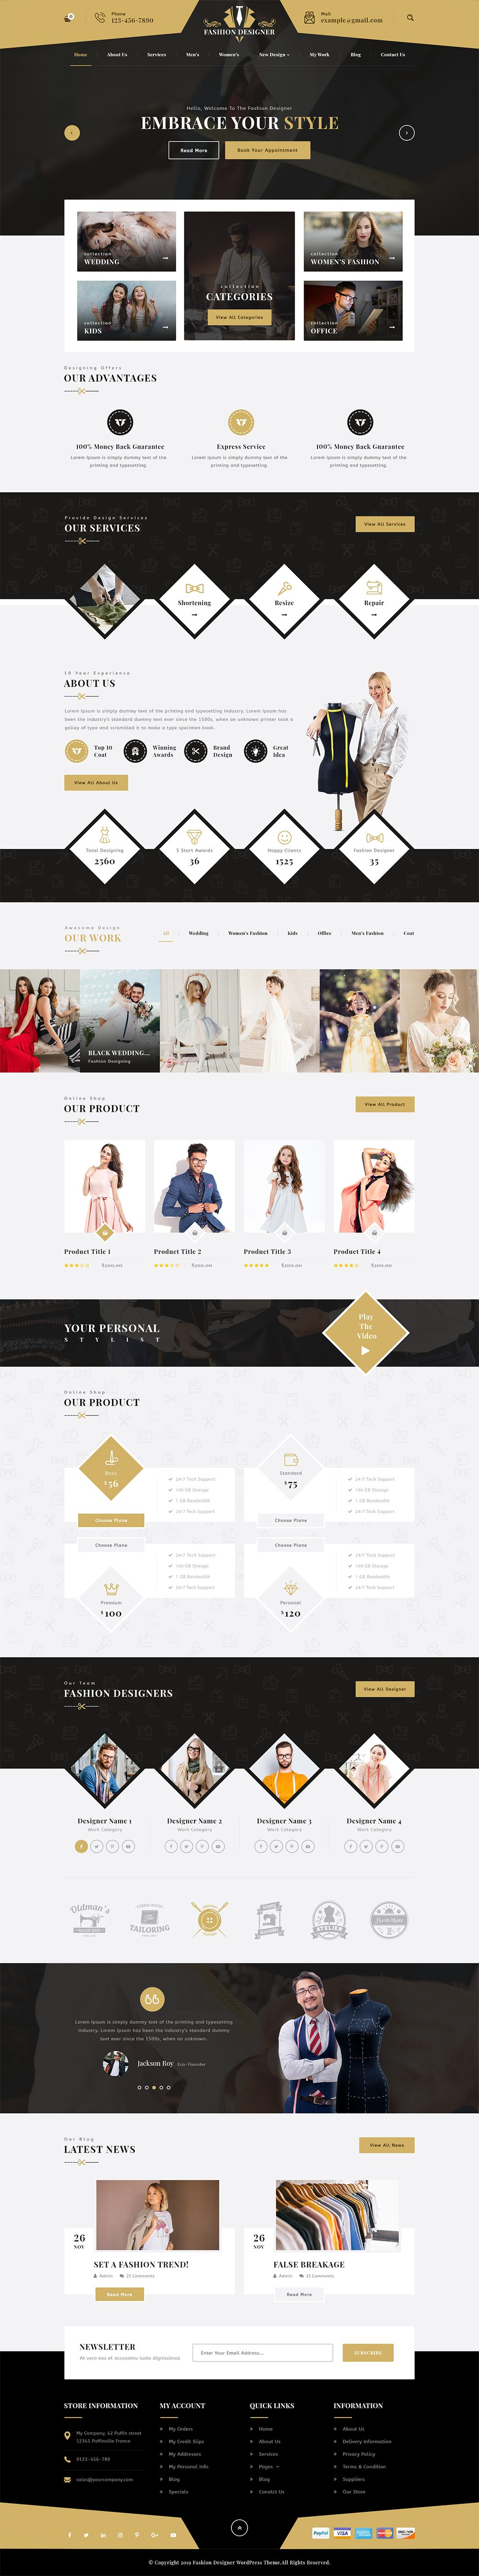 Fashion Designer WordPress Theme